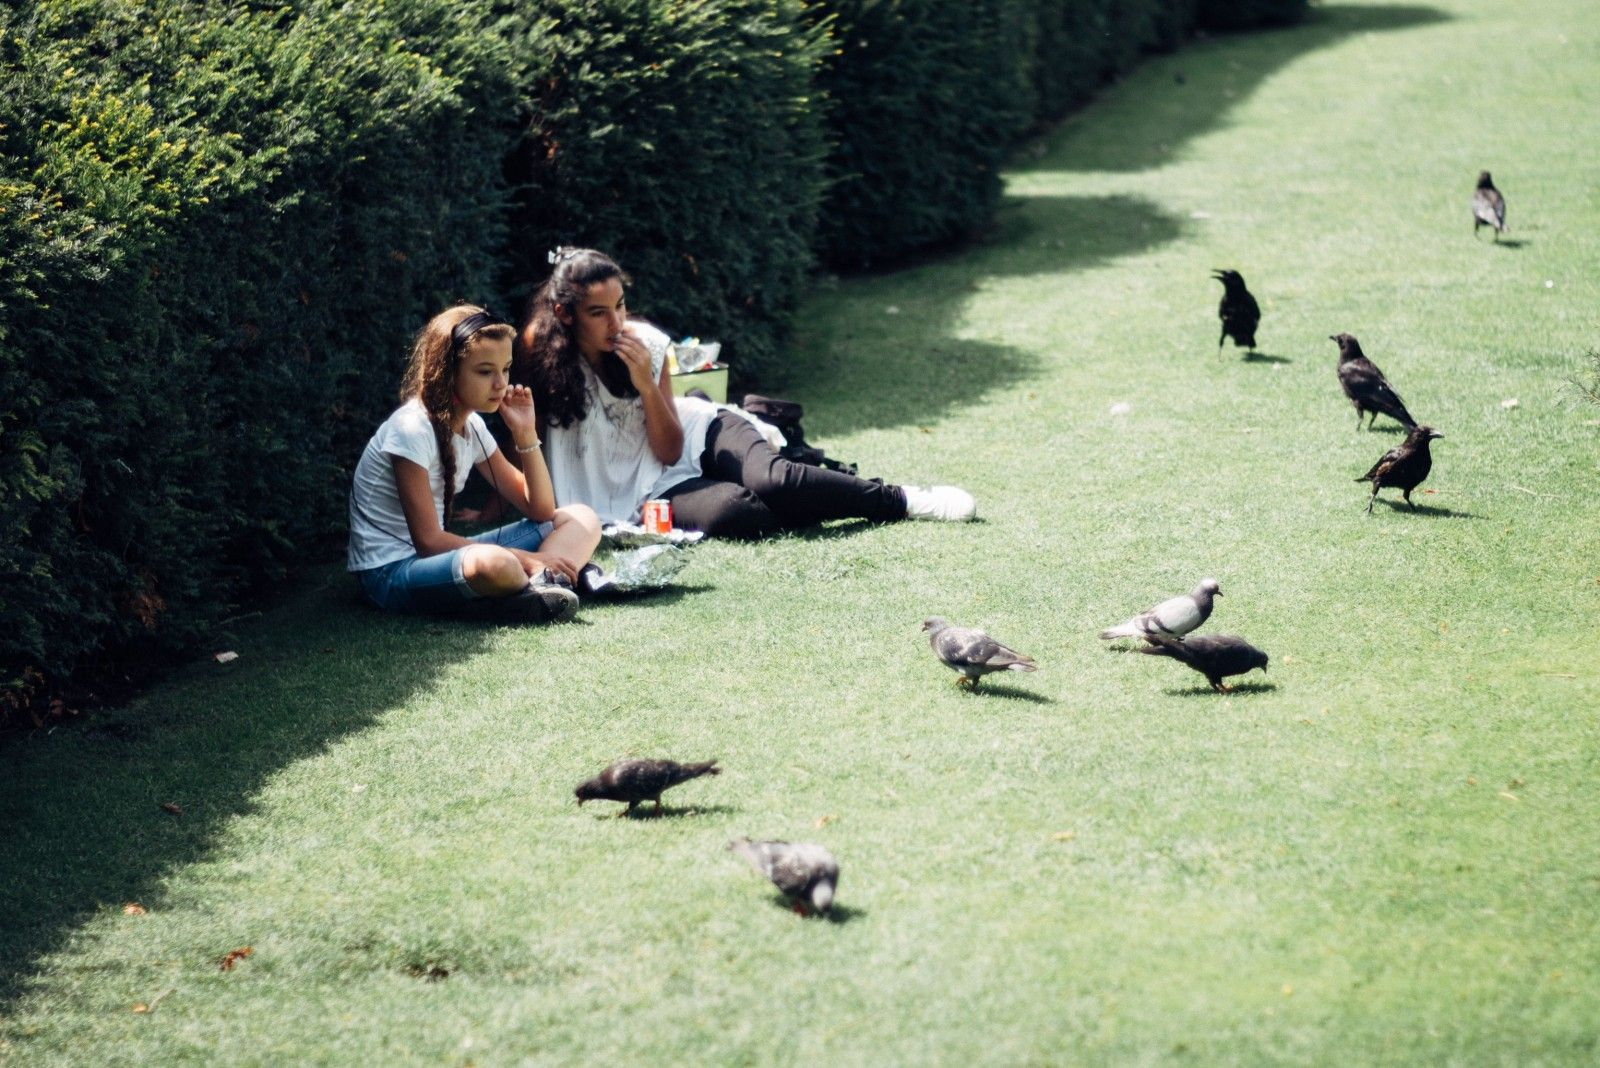 Two young girls having lunch in the park.